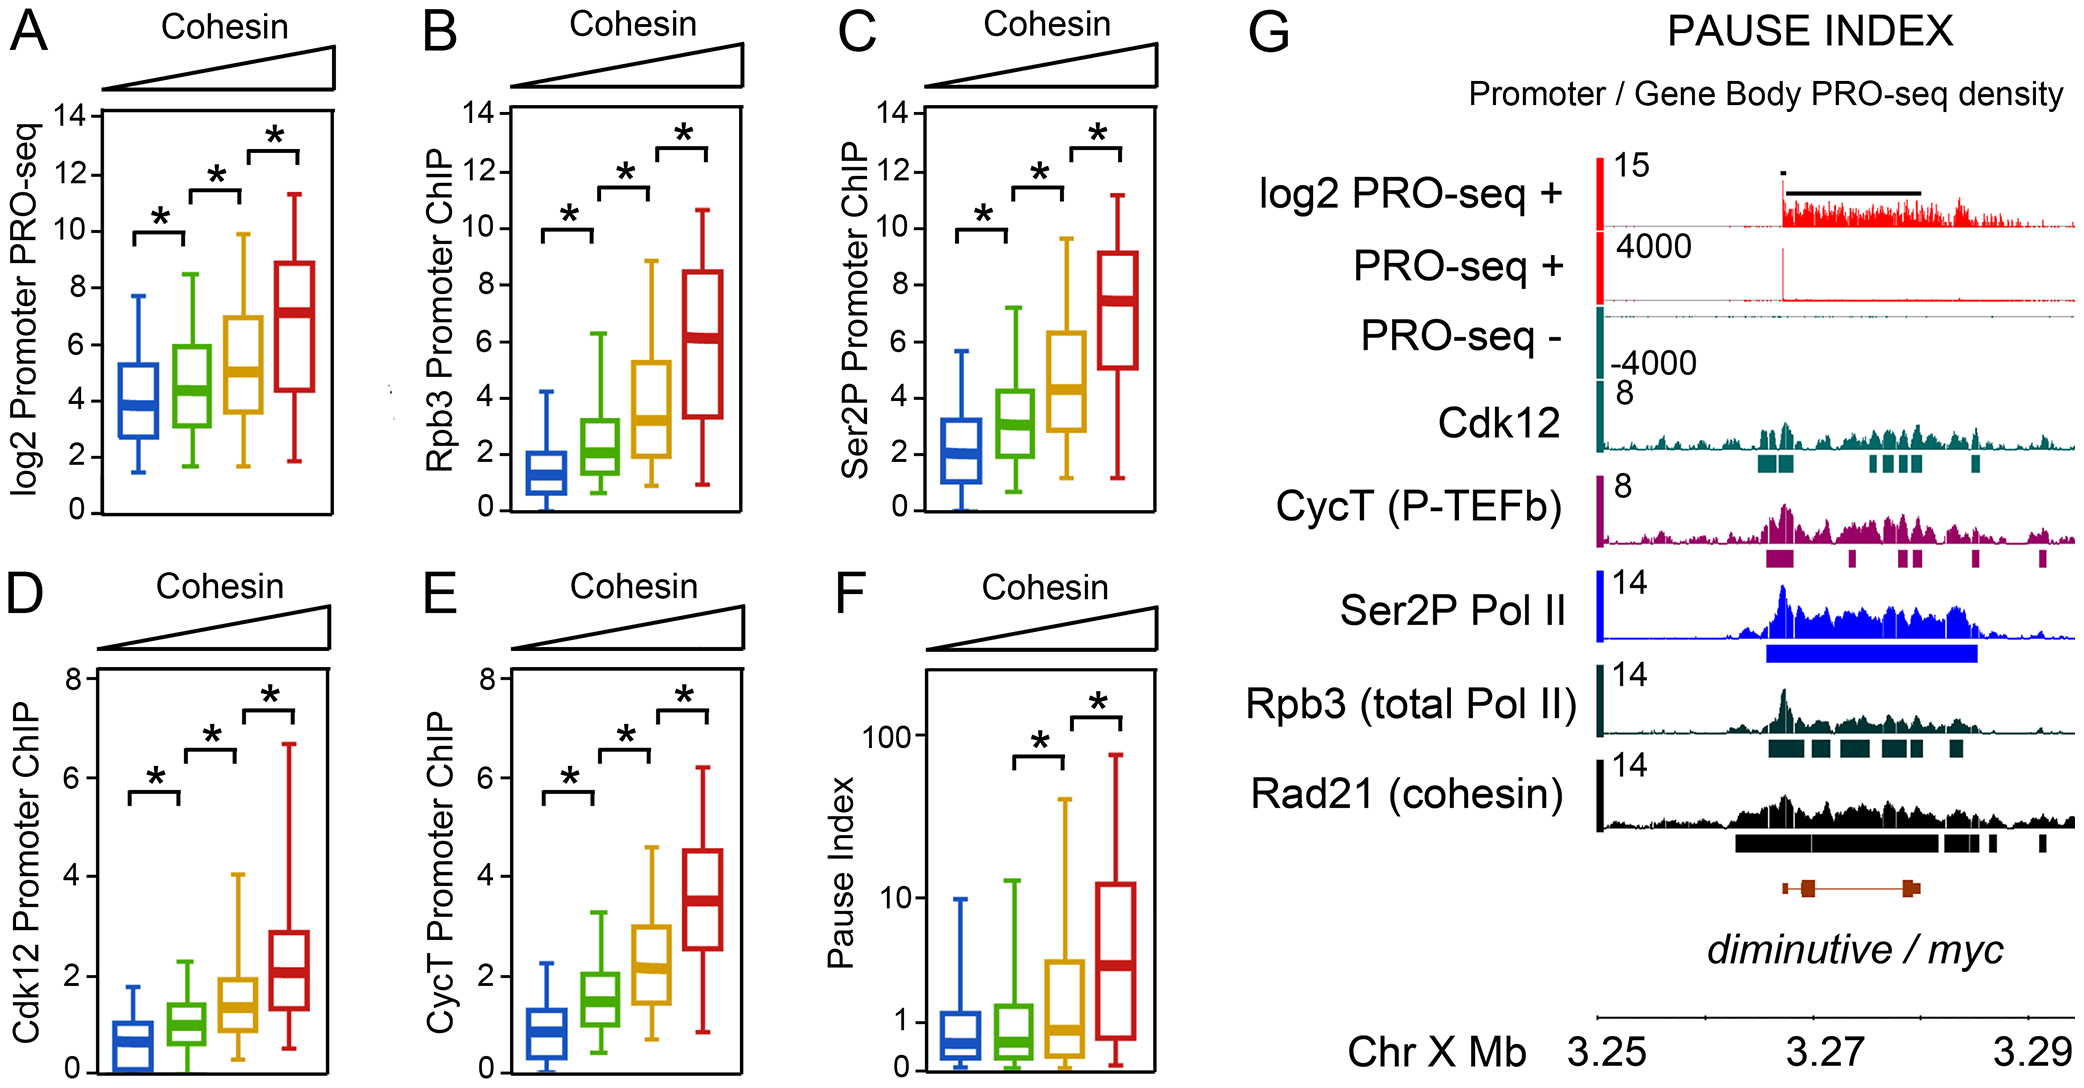 Pol II occupancy and promoter-proximal pausing at active genes correlates with cohesin levels in BG3 cells.